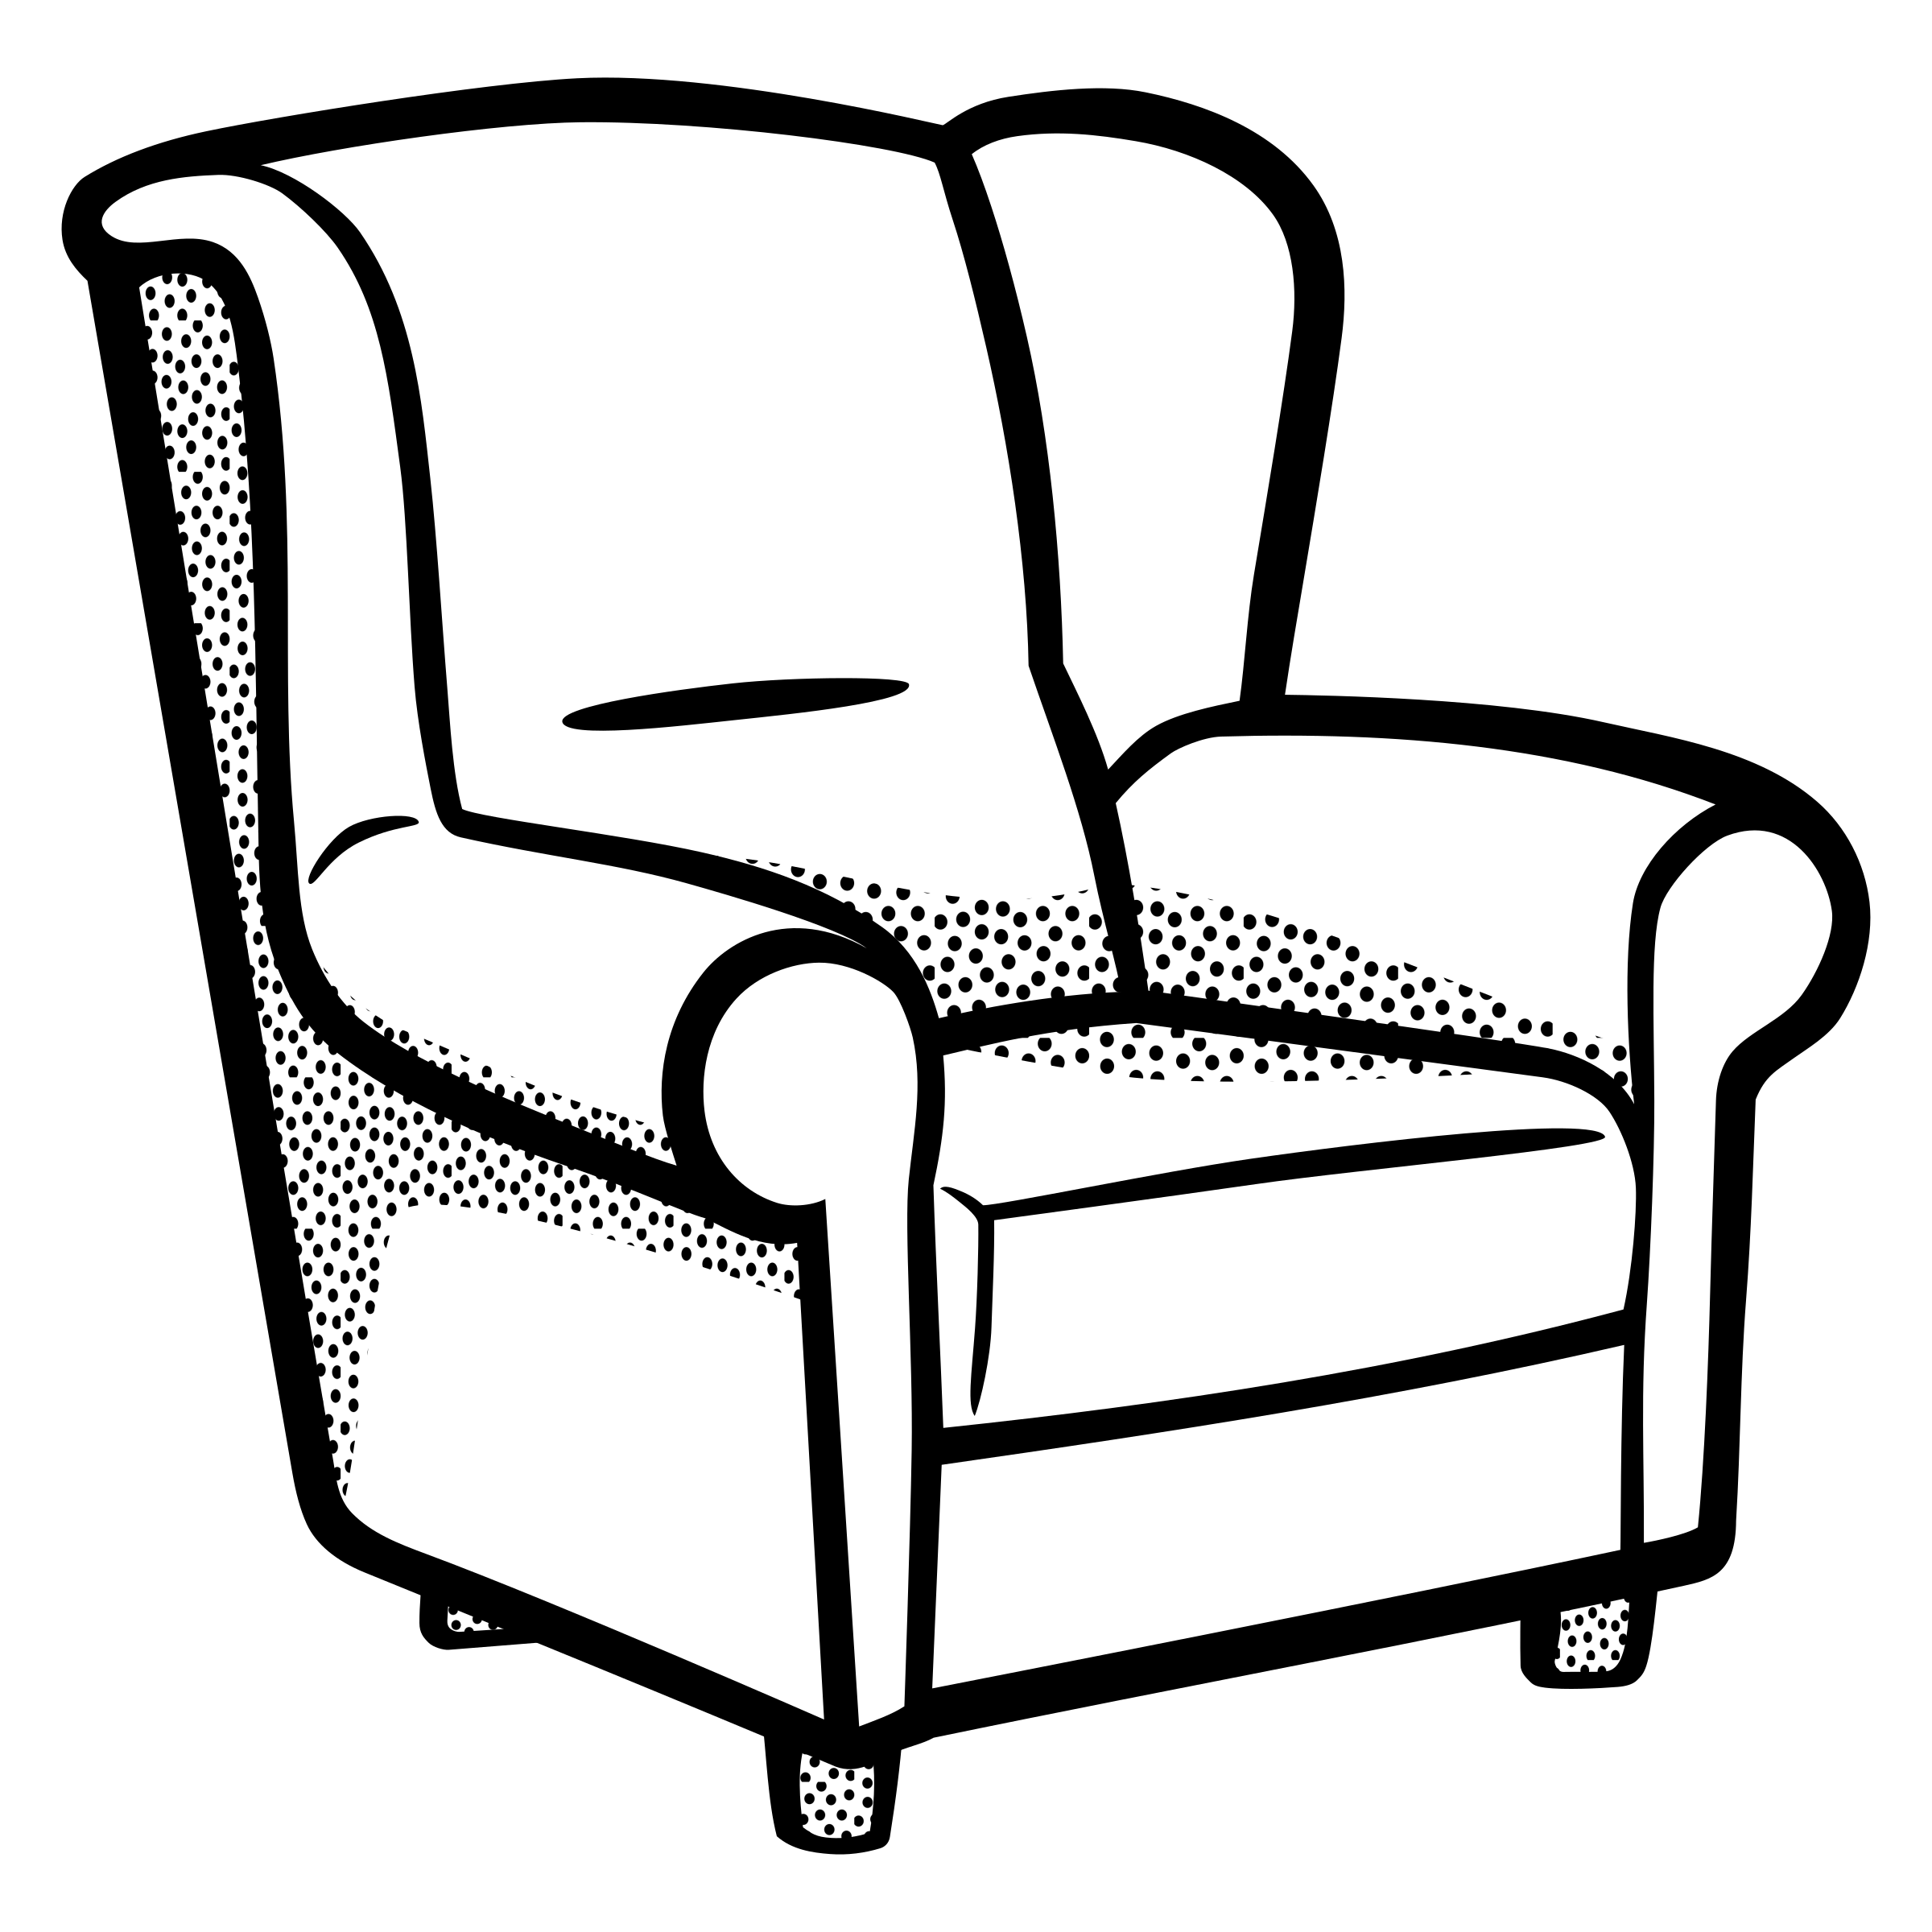 BIG IMAGE (PNG) - Armchair Clipart